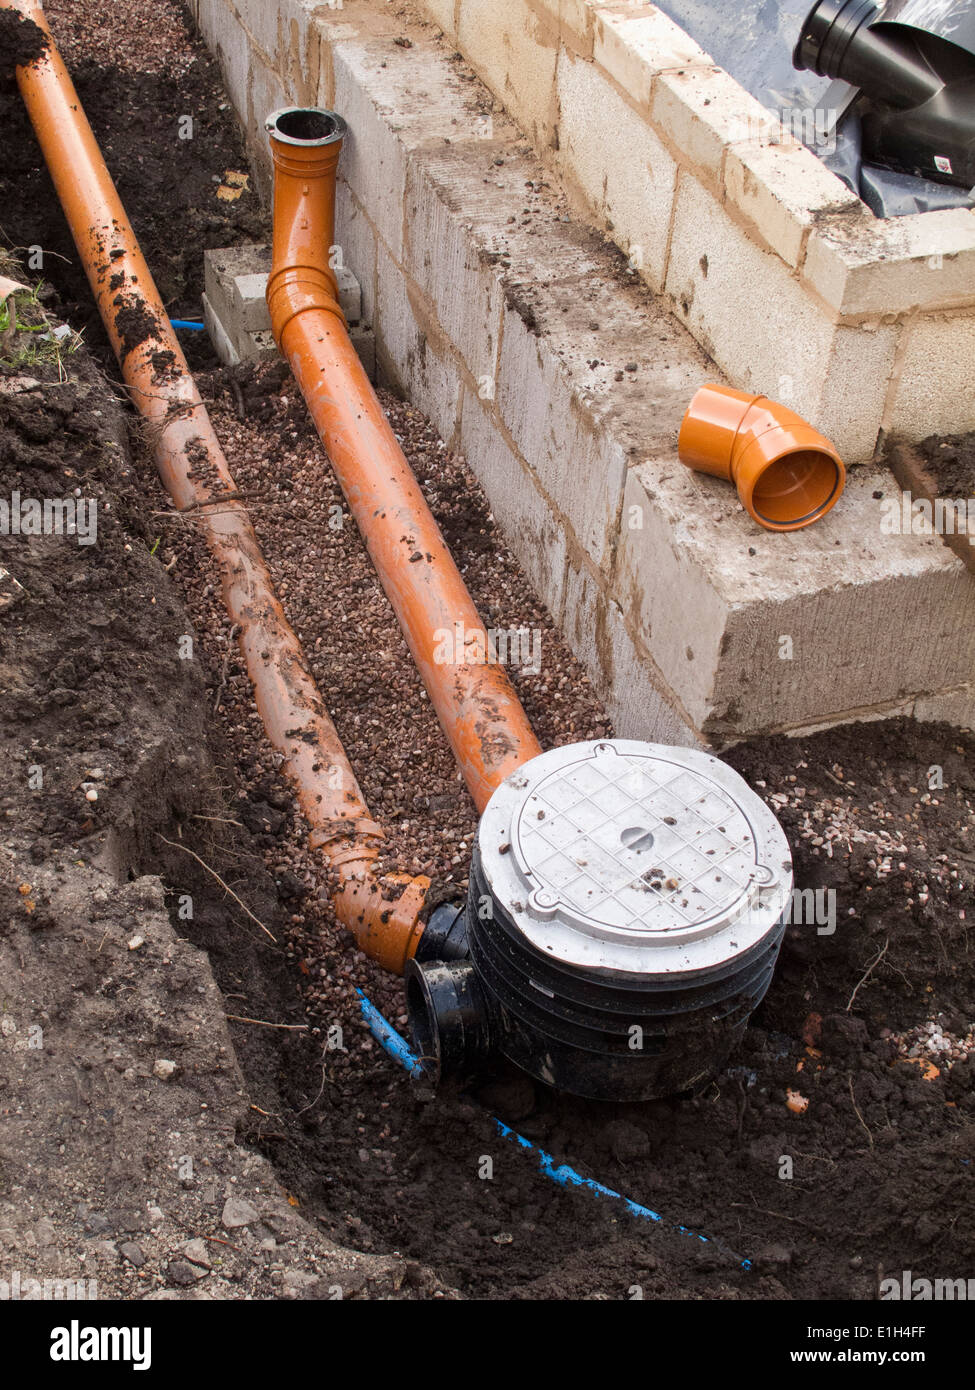 self building house, drainage, drain pipe connection to